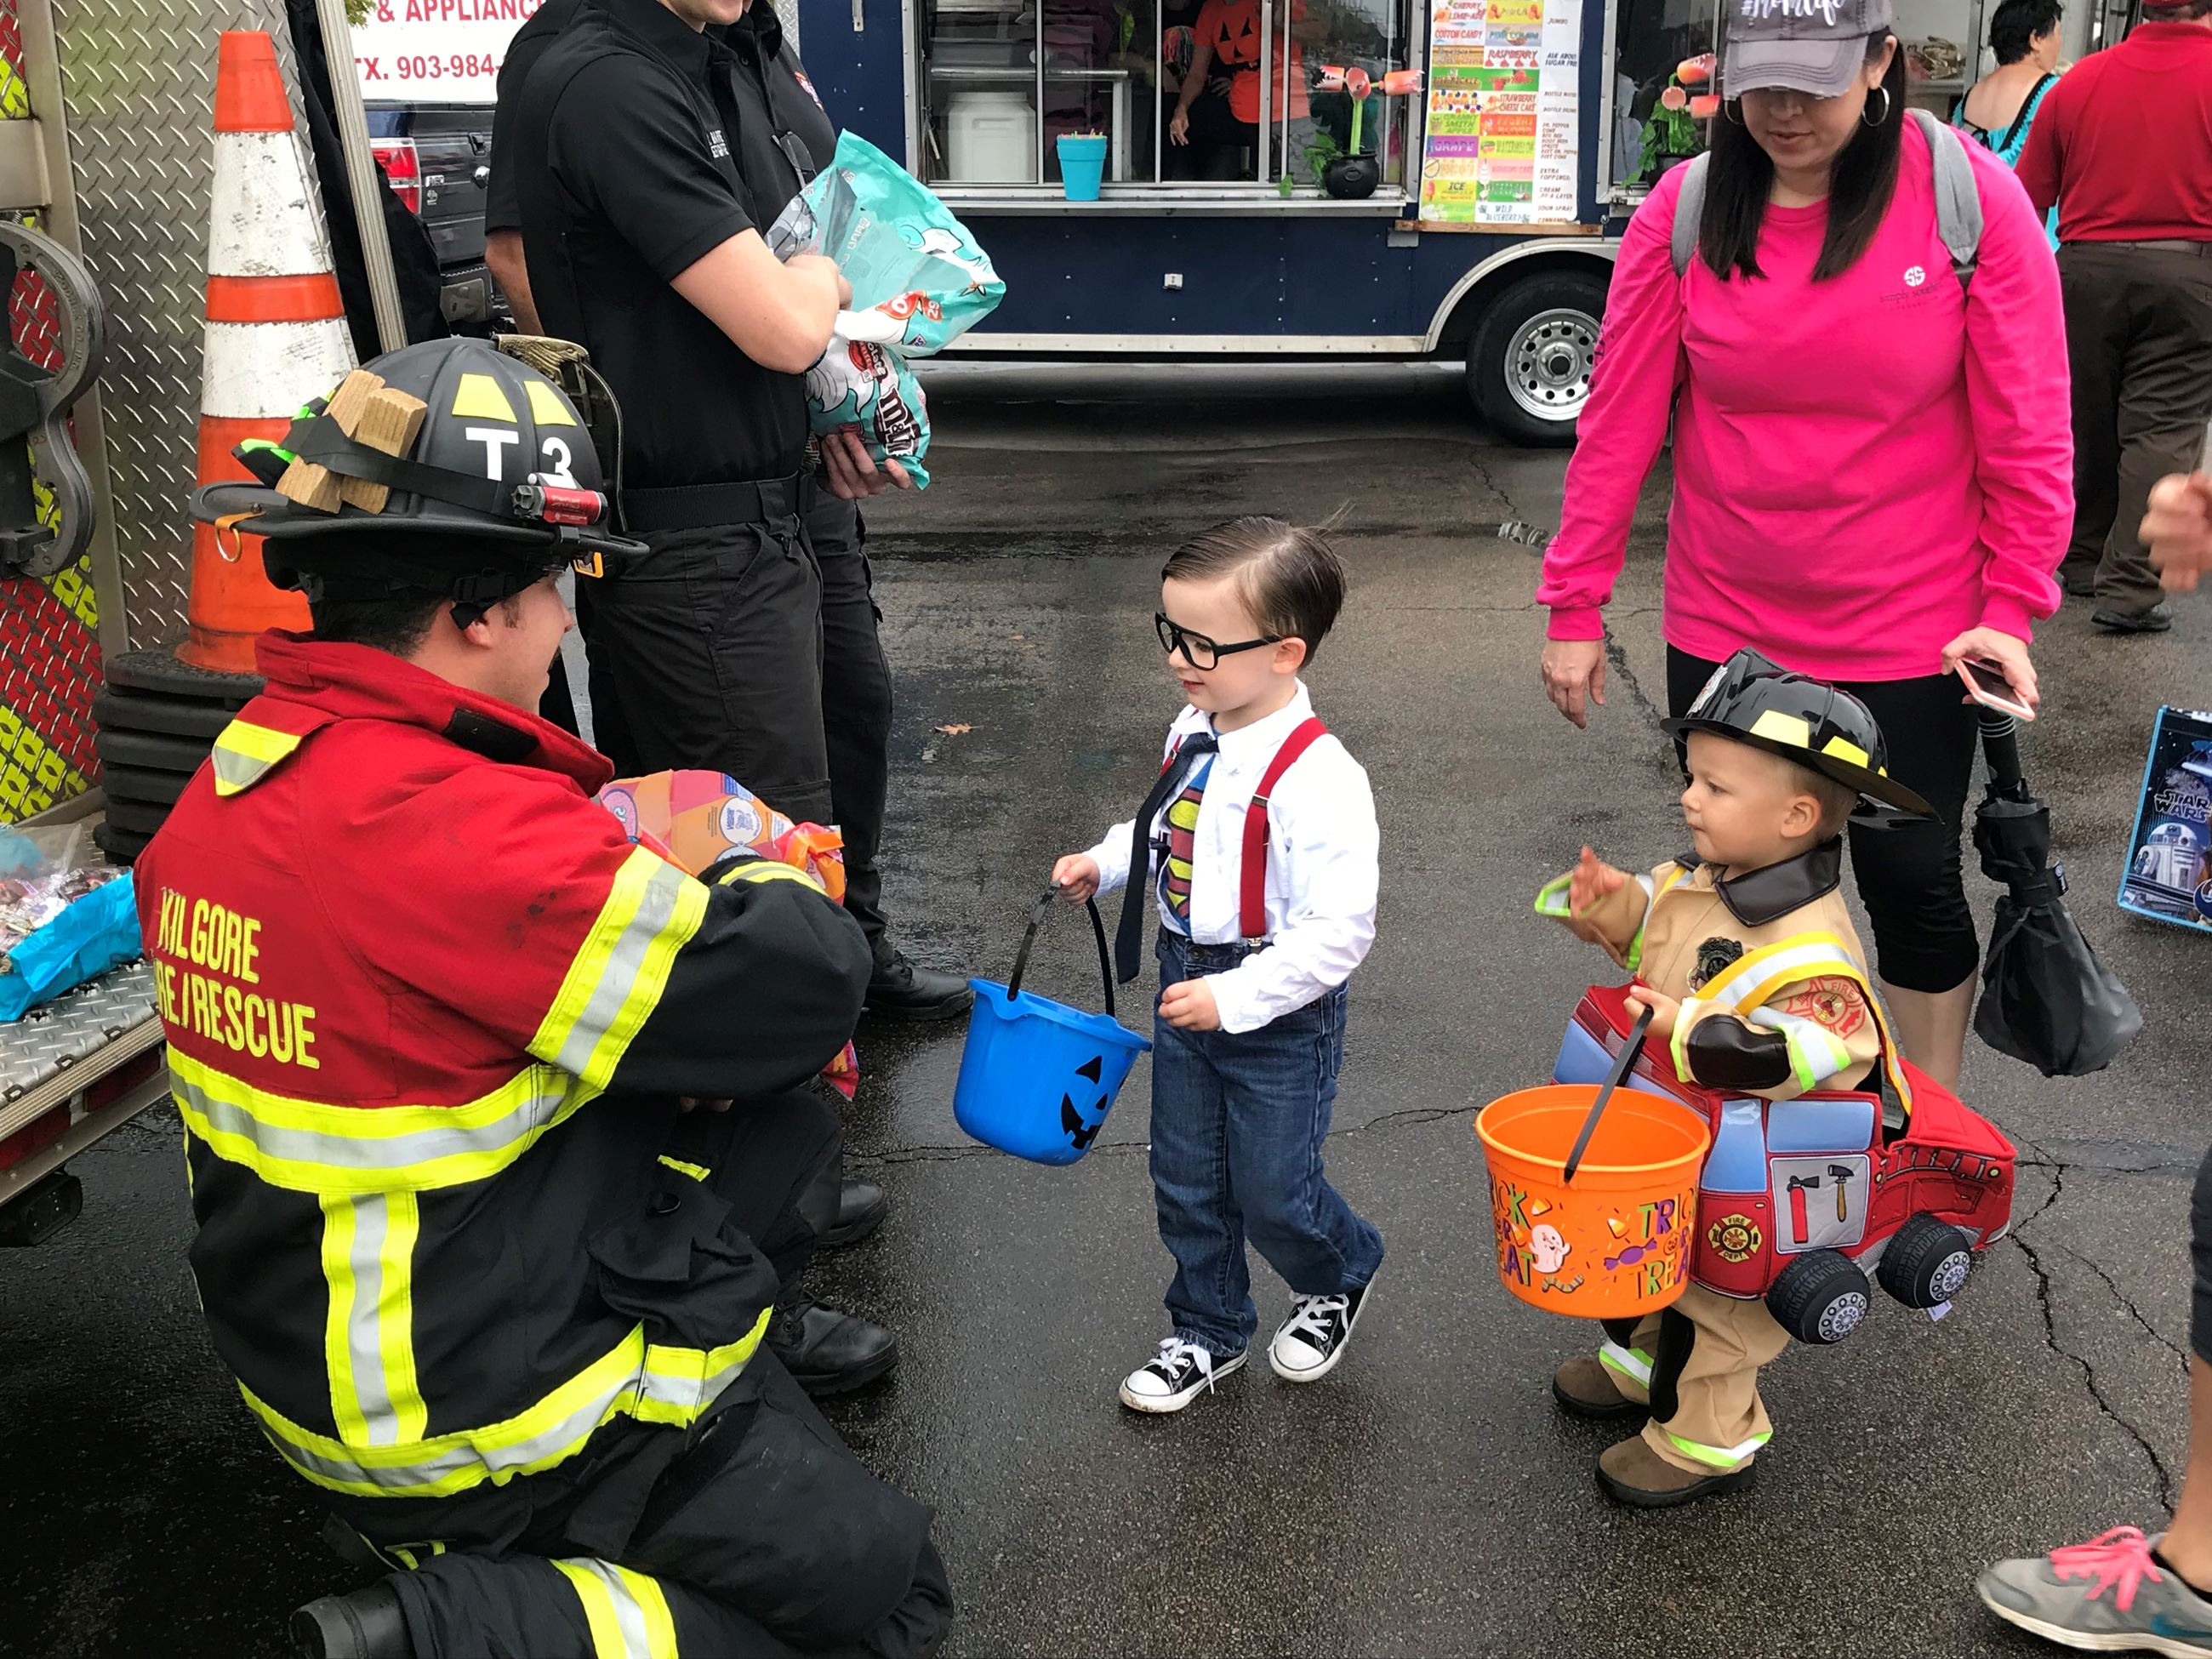 Young children dressed up for Trick or Treat receiving candy from a firefighter